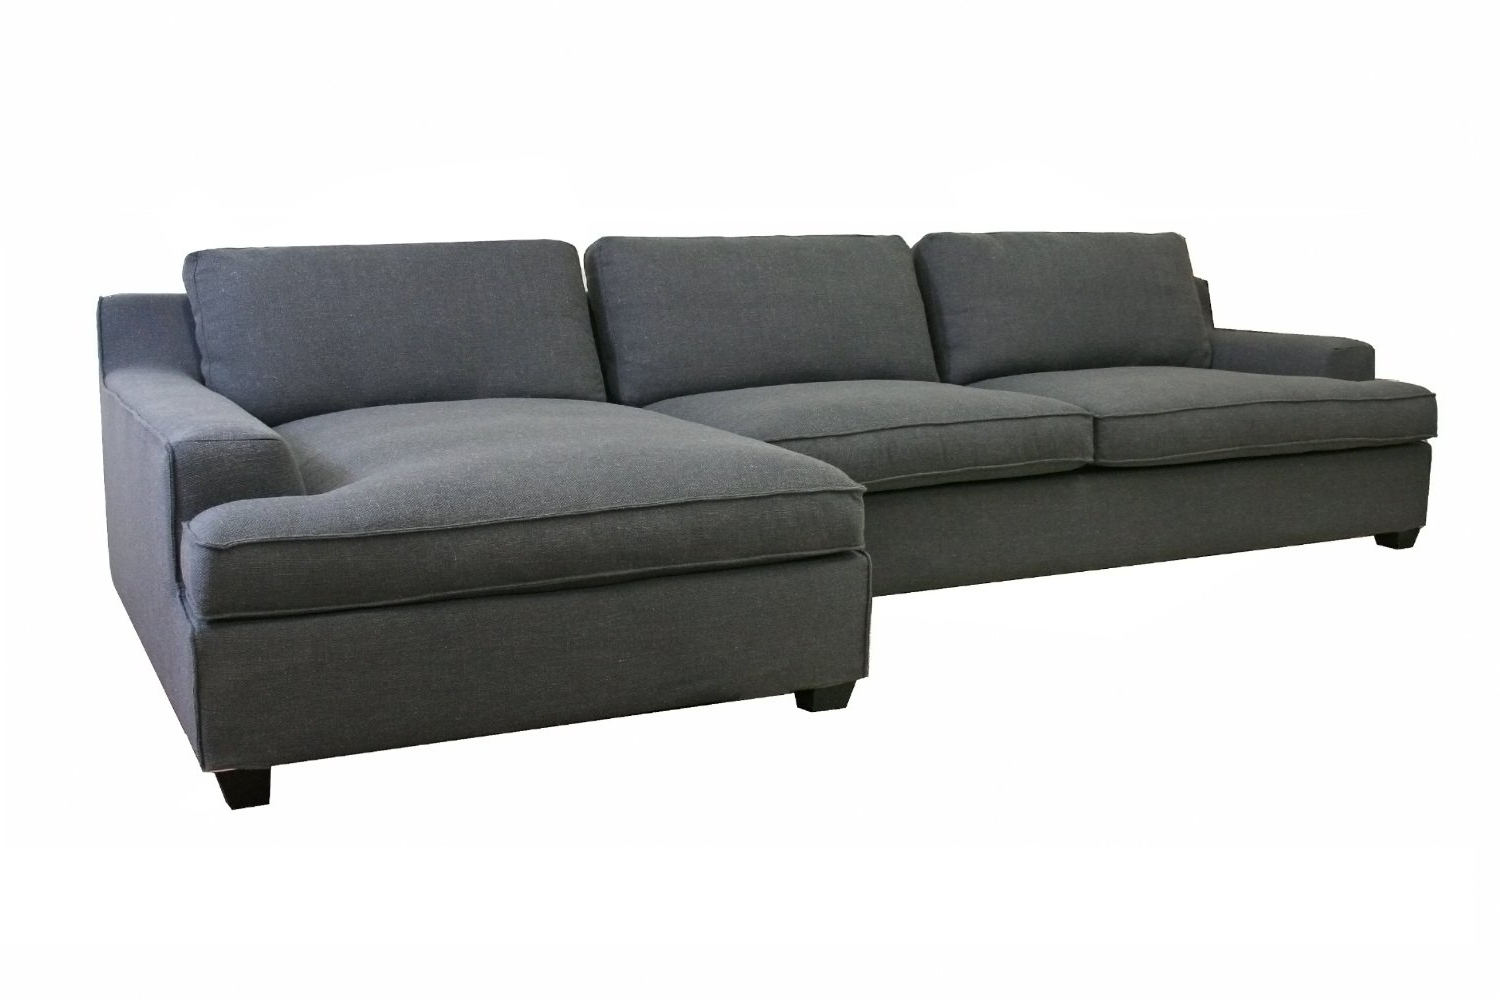 Leather Loveseat With Chaise 72 Inch Sofa Sectional Sleeper Sofa With Regard To Most Recent Small Couches With Chaise Lounge (View 5 of 15)